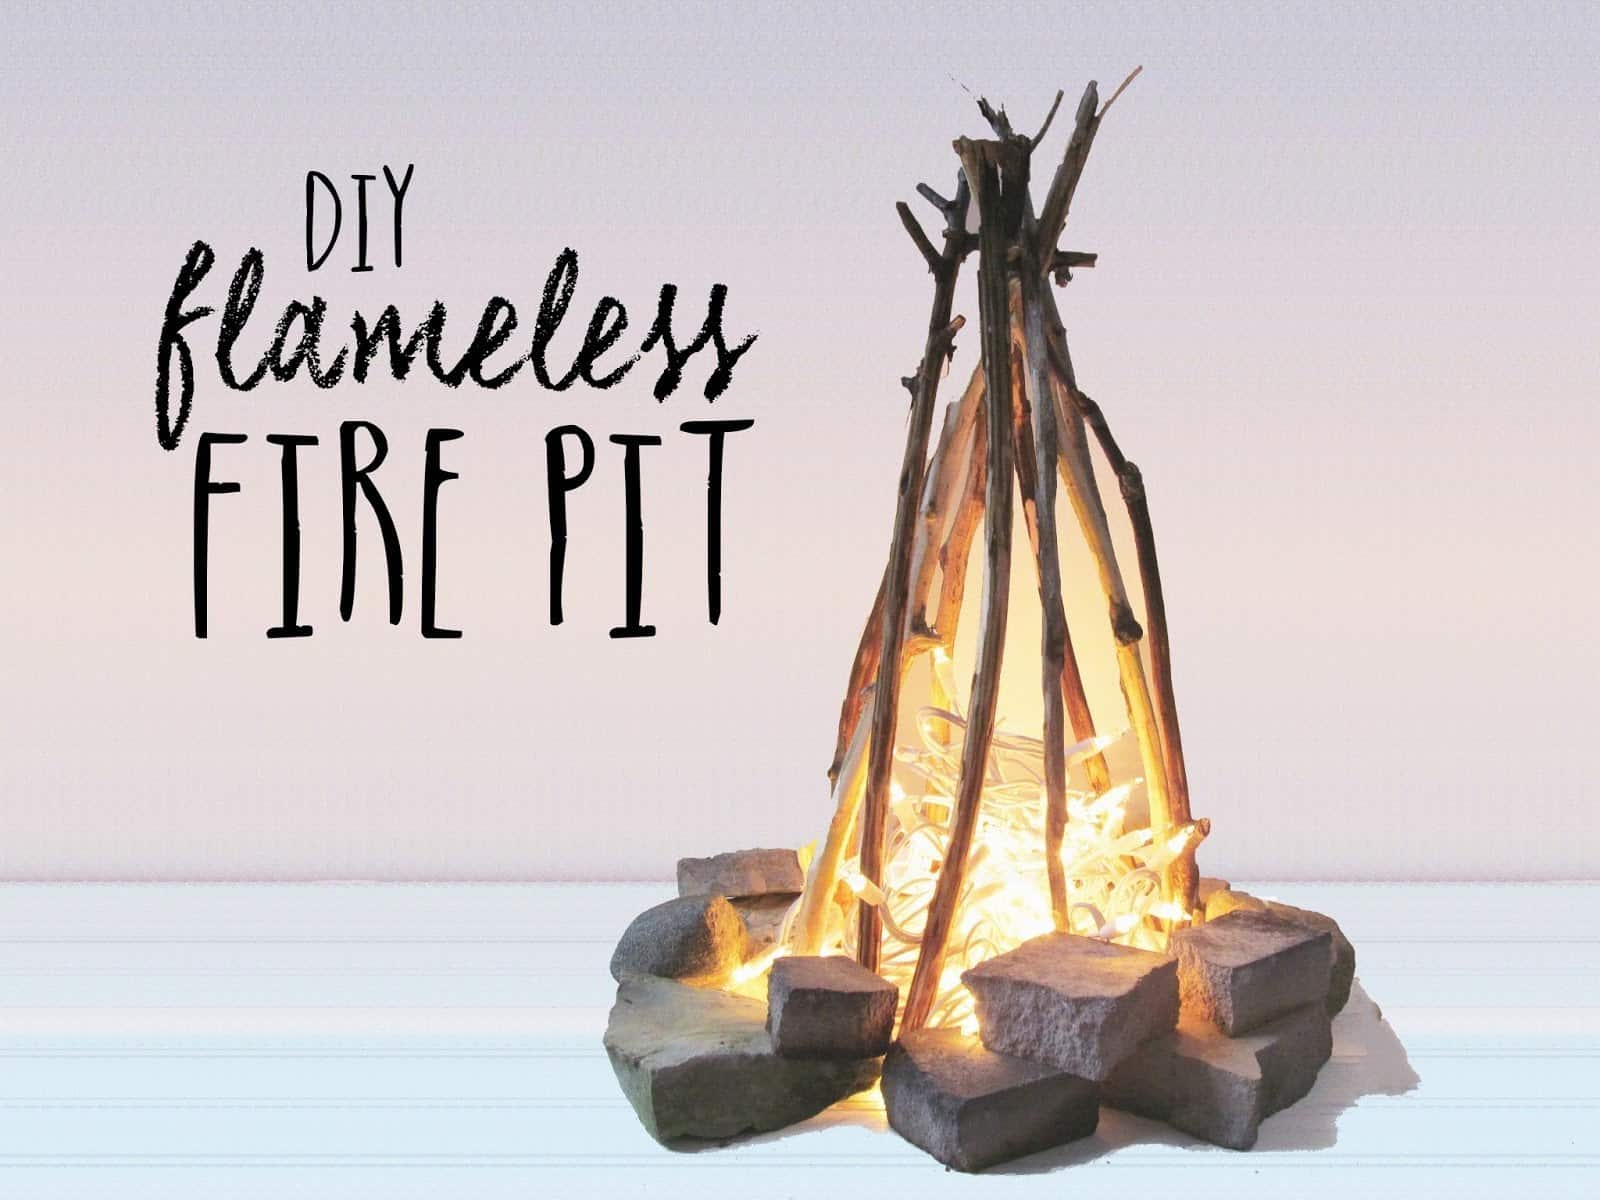 Diy Flameless Fire Pit With Christmas Lights